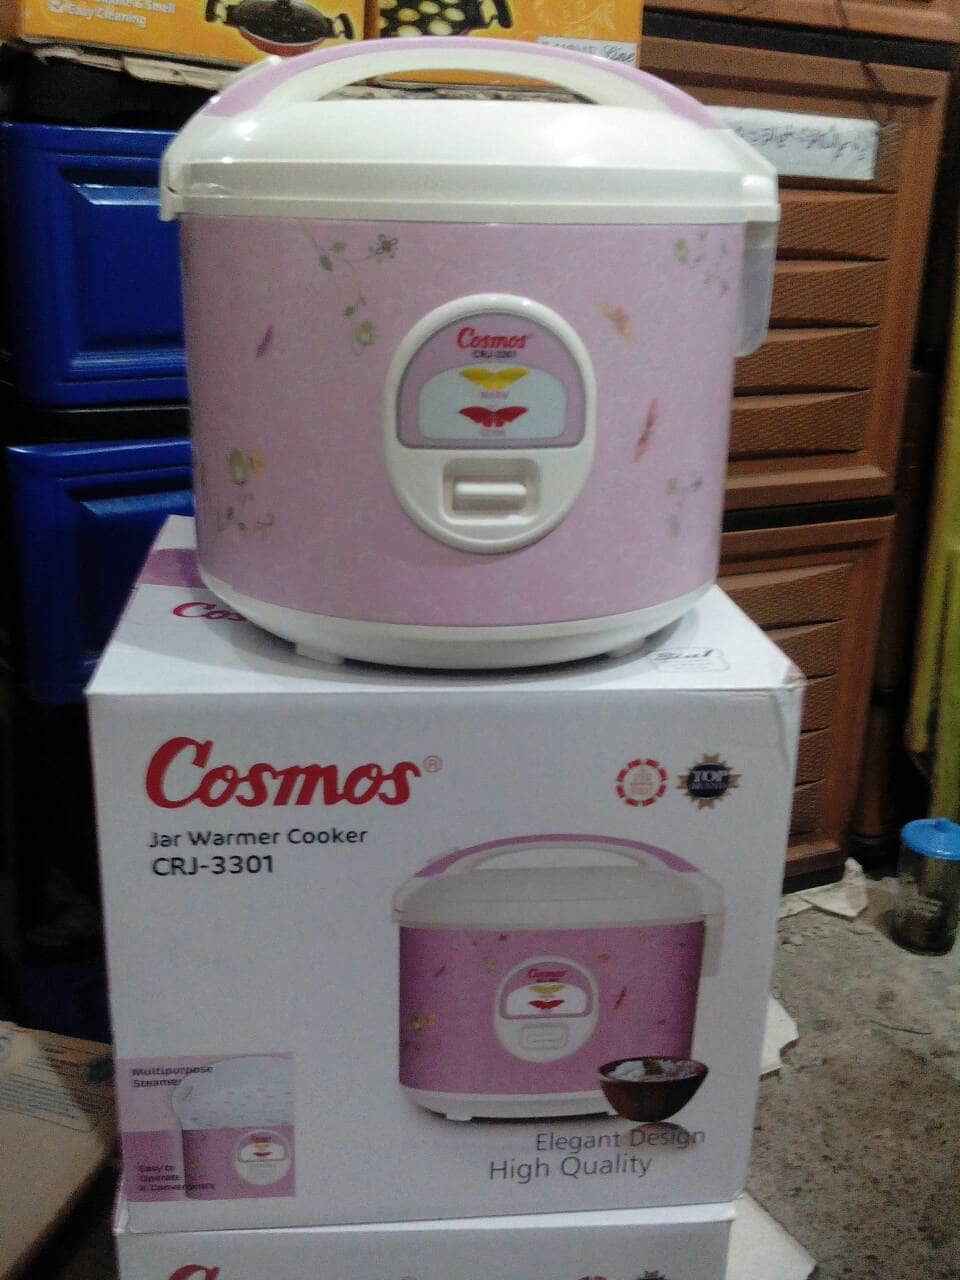 Jual Magic Com Cosmos 18 Ltr 3 In 1 Suciberdikari Elektrik Rice Cooker Crj 3301 Tokopedia